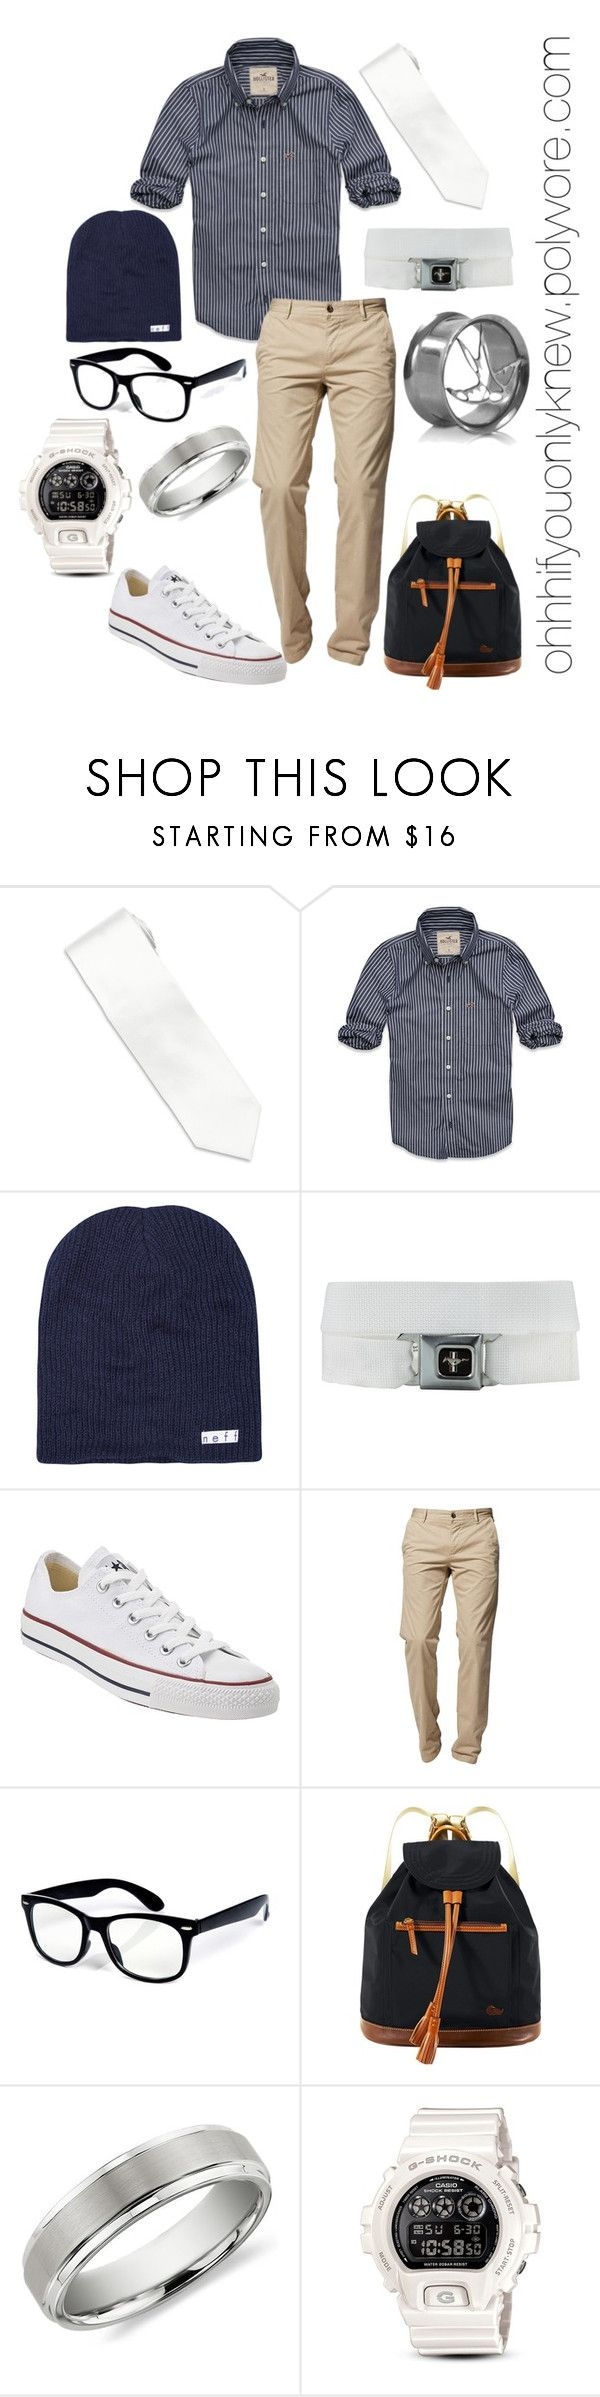 """Untitled #22"" by ohhhifyouonlyknew ❤ liked on Polyvore featuring Stefano Ricci, Hollister Co., Neff, Converse, BOSS Orange, Dooney & Bourke, Blue Nile, G-Shock, casual and my style"